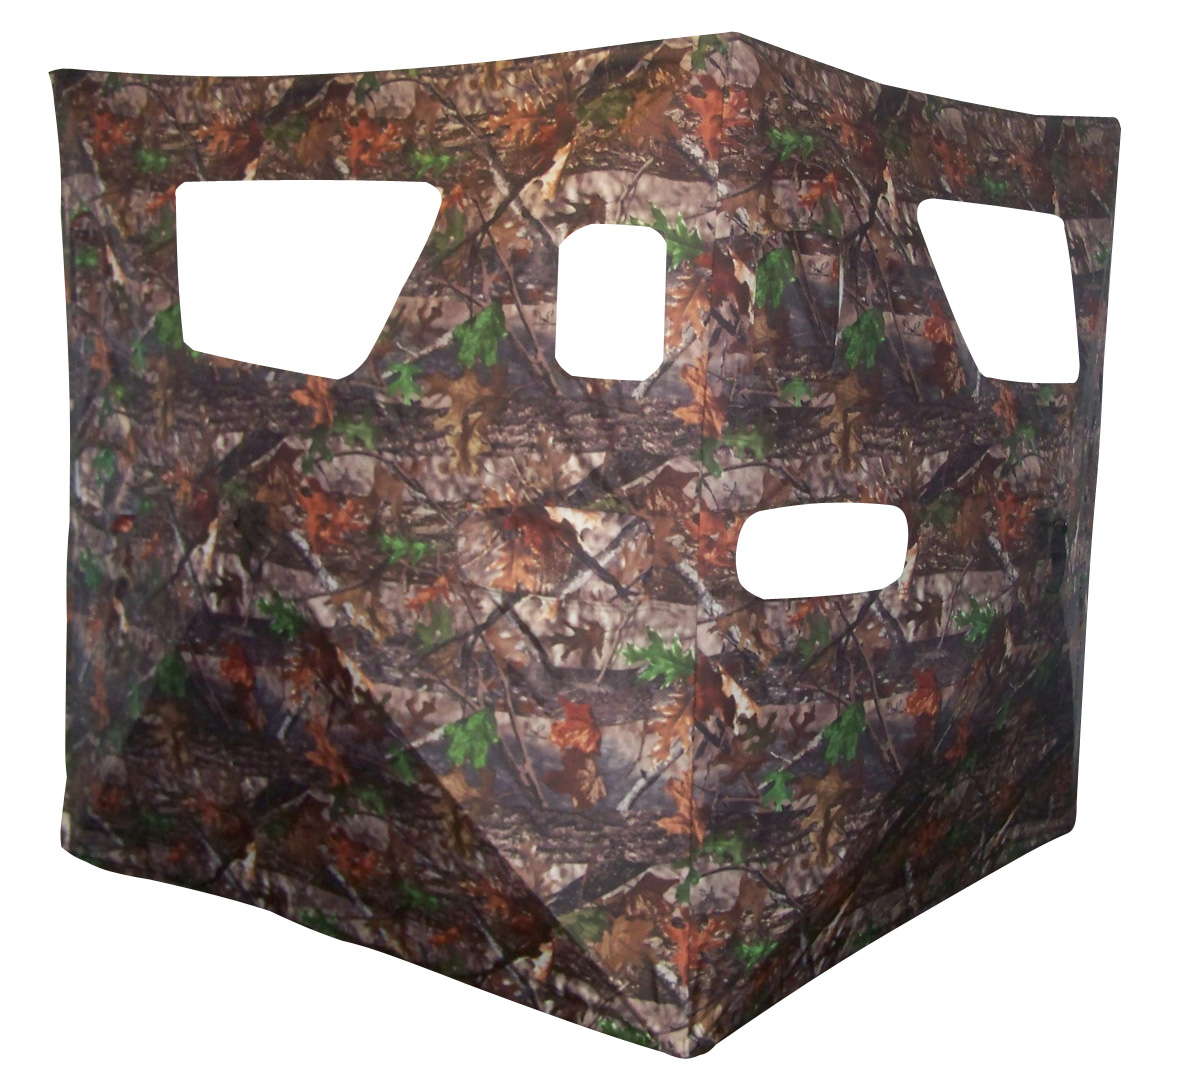 ks p hunting hb up blind pop covert kill camouflage blinds discount shot ramps